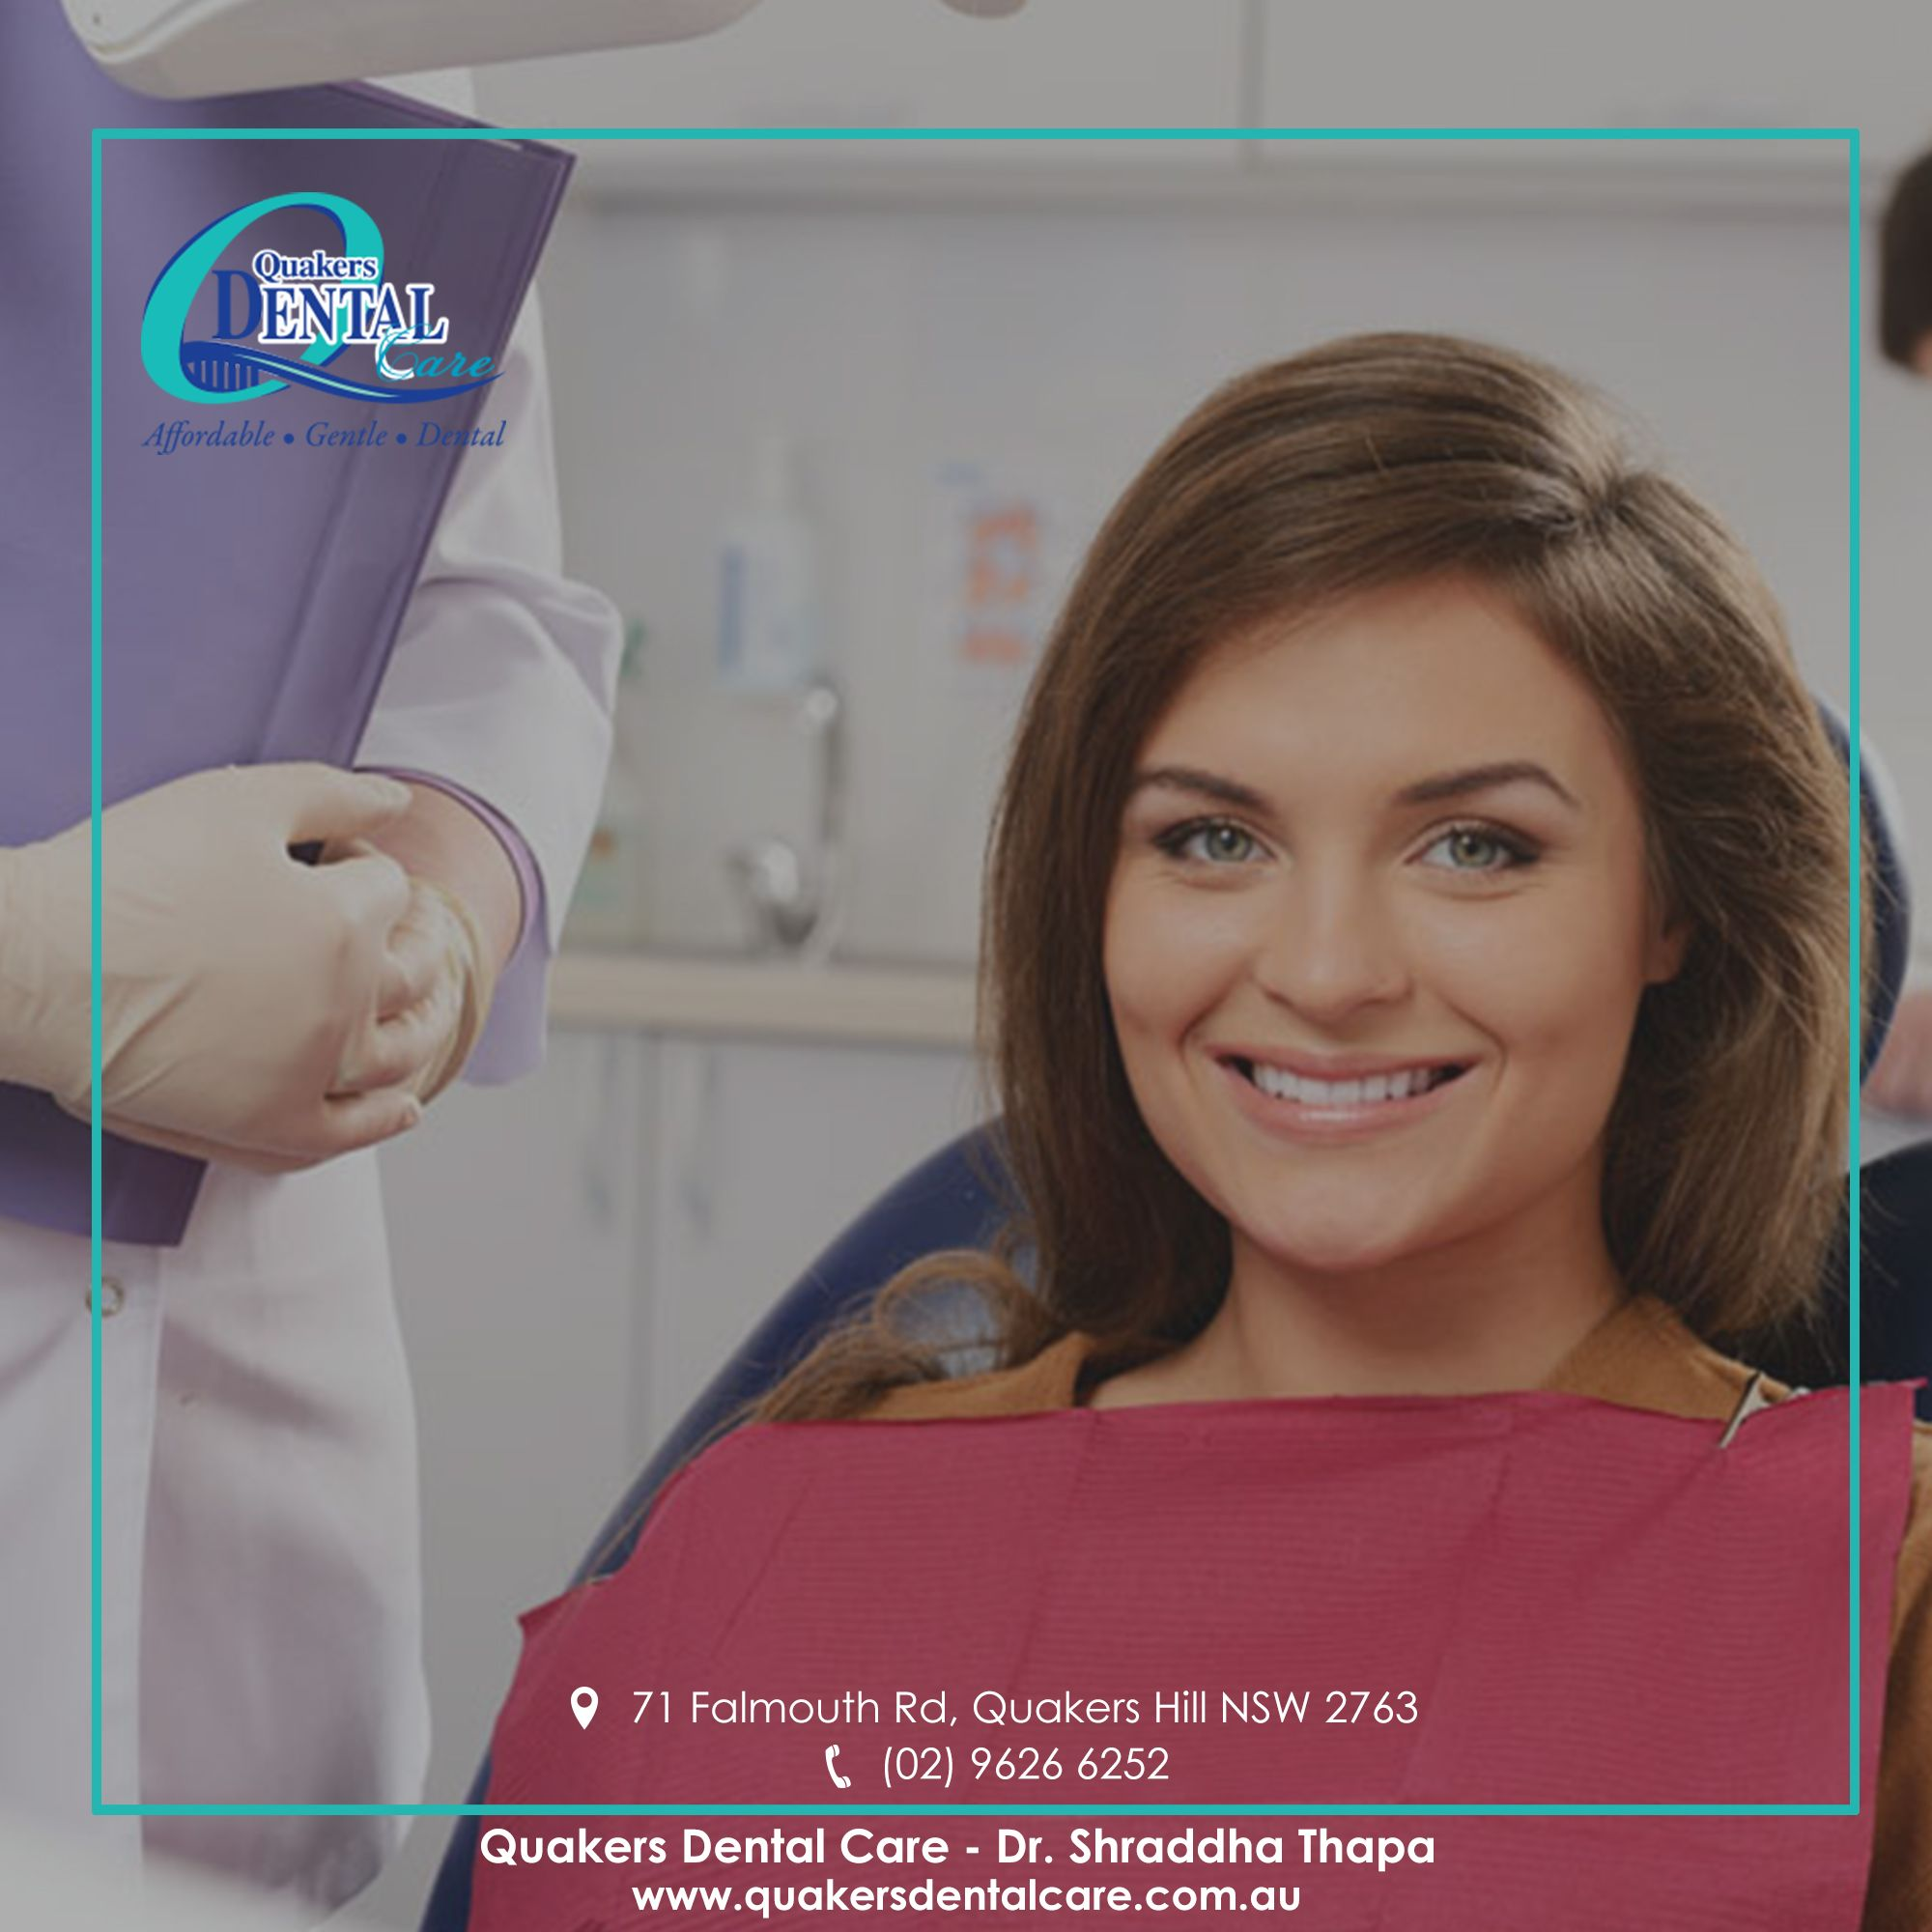 Our team of highlyskilled and qualified dentists are